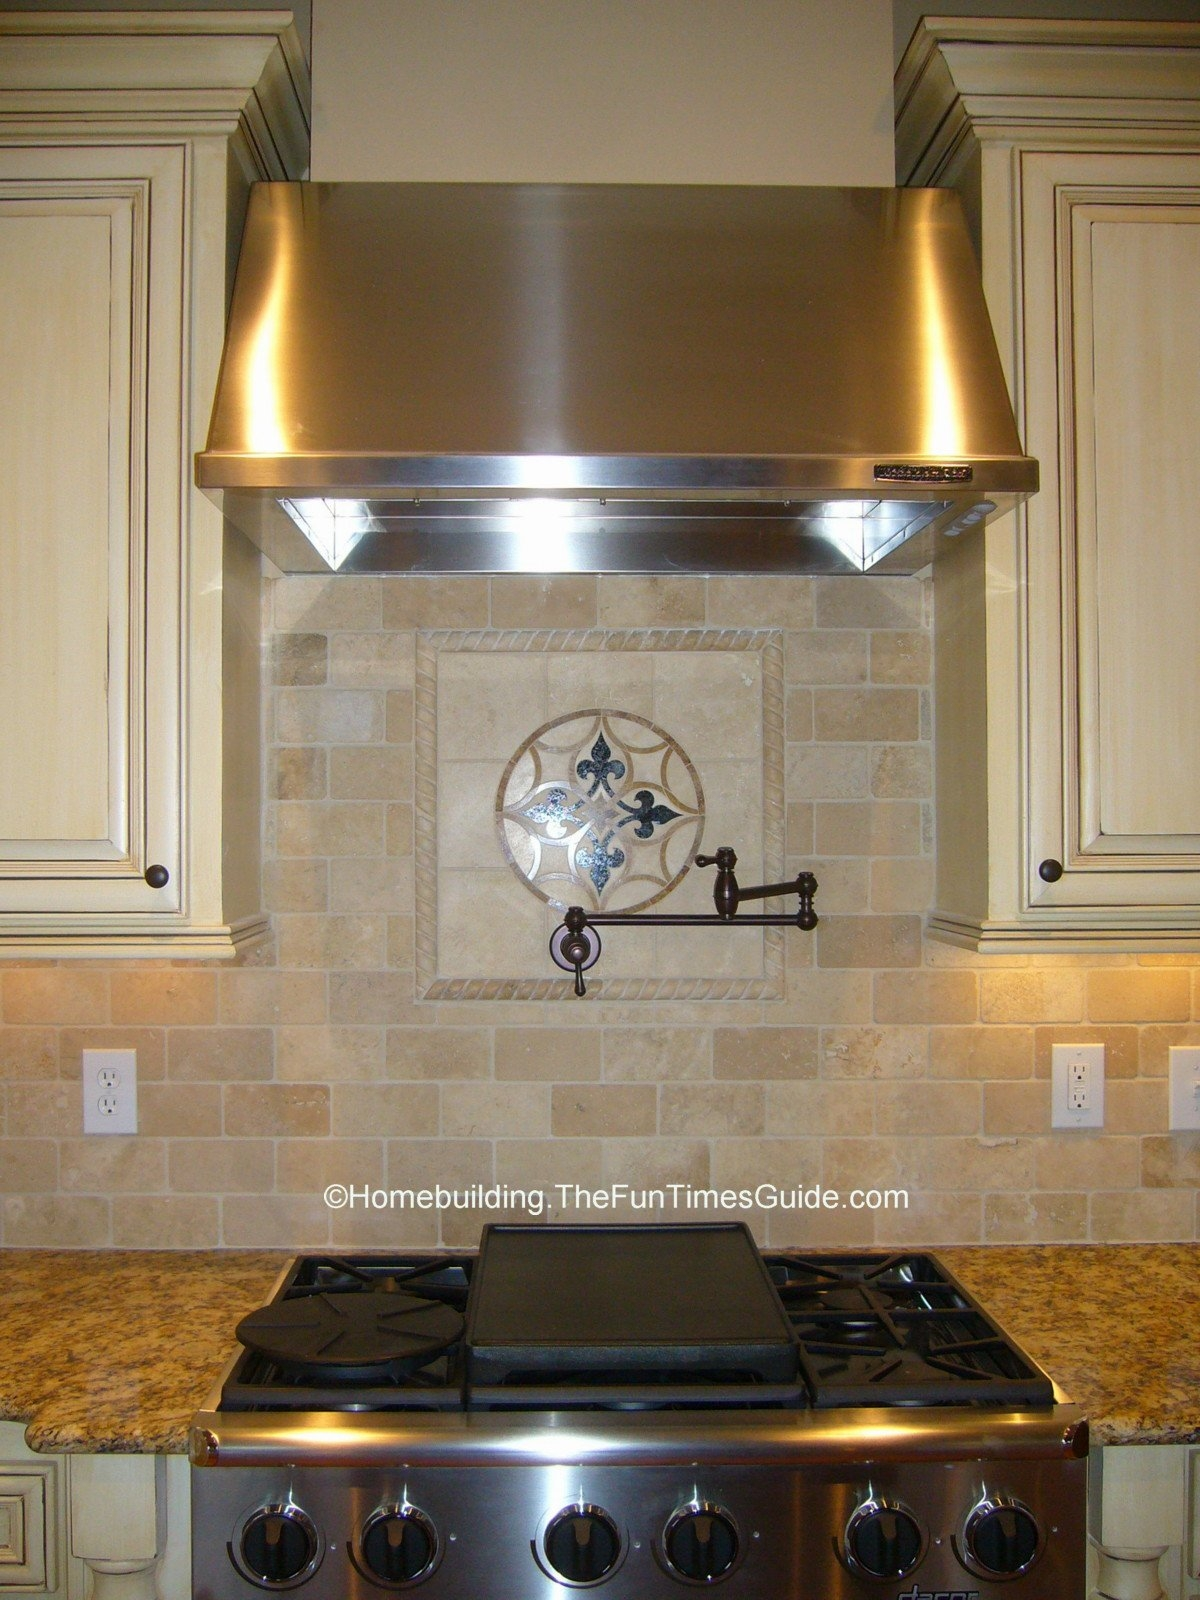 Ideas, pot filler faucets combine function with style the homebuilding regarding dimensions 1200 x 1600  .